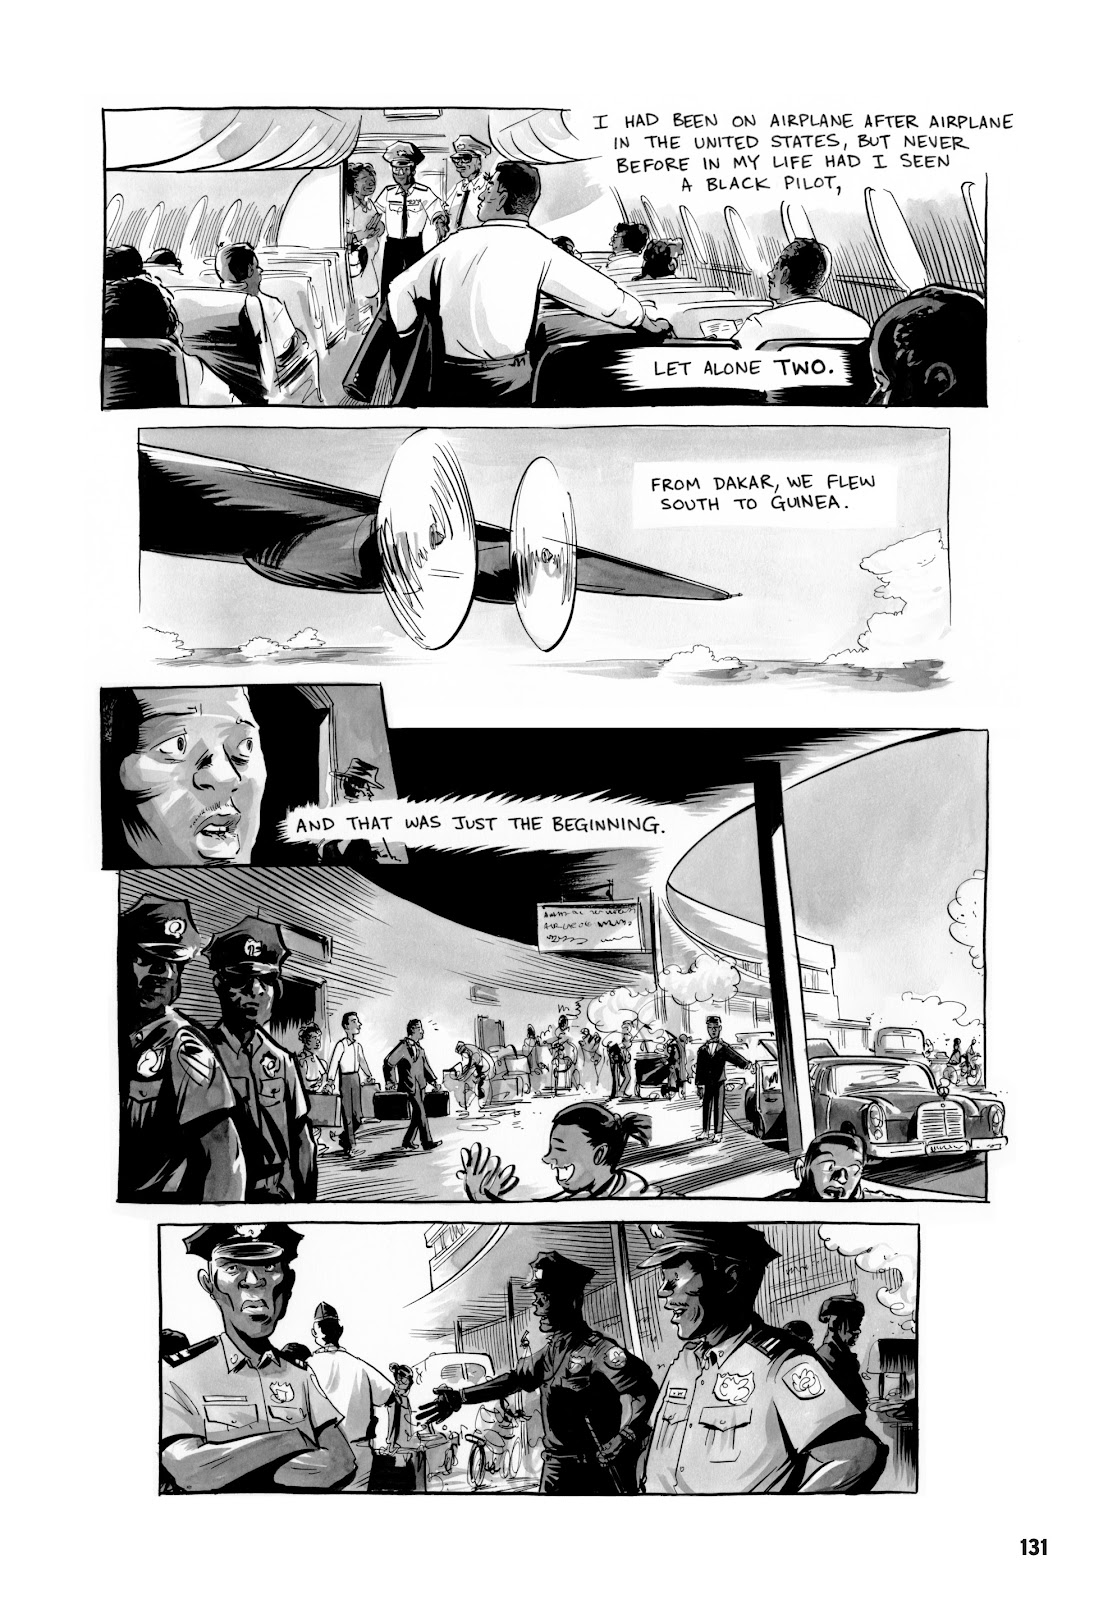 March 3 Page 126